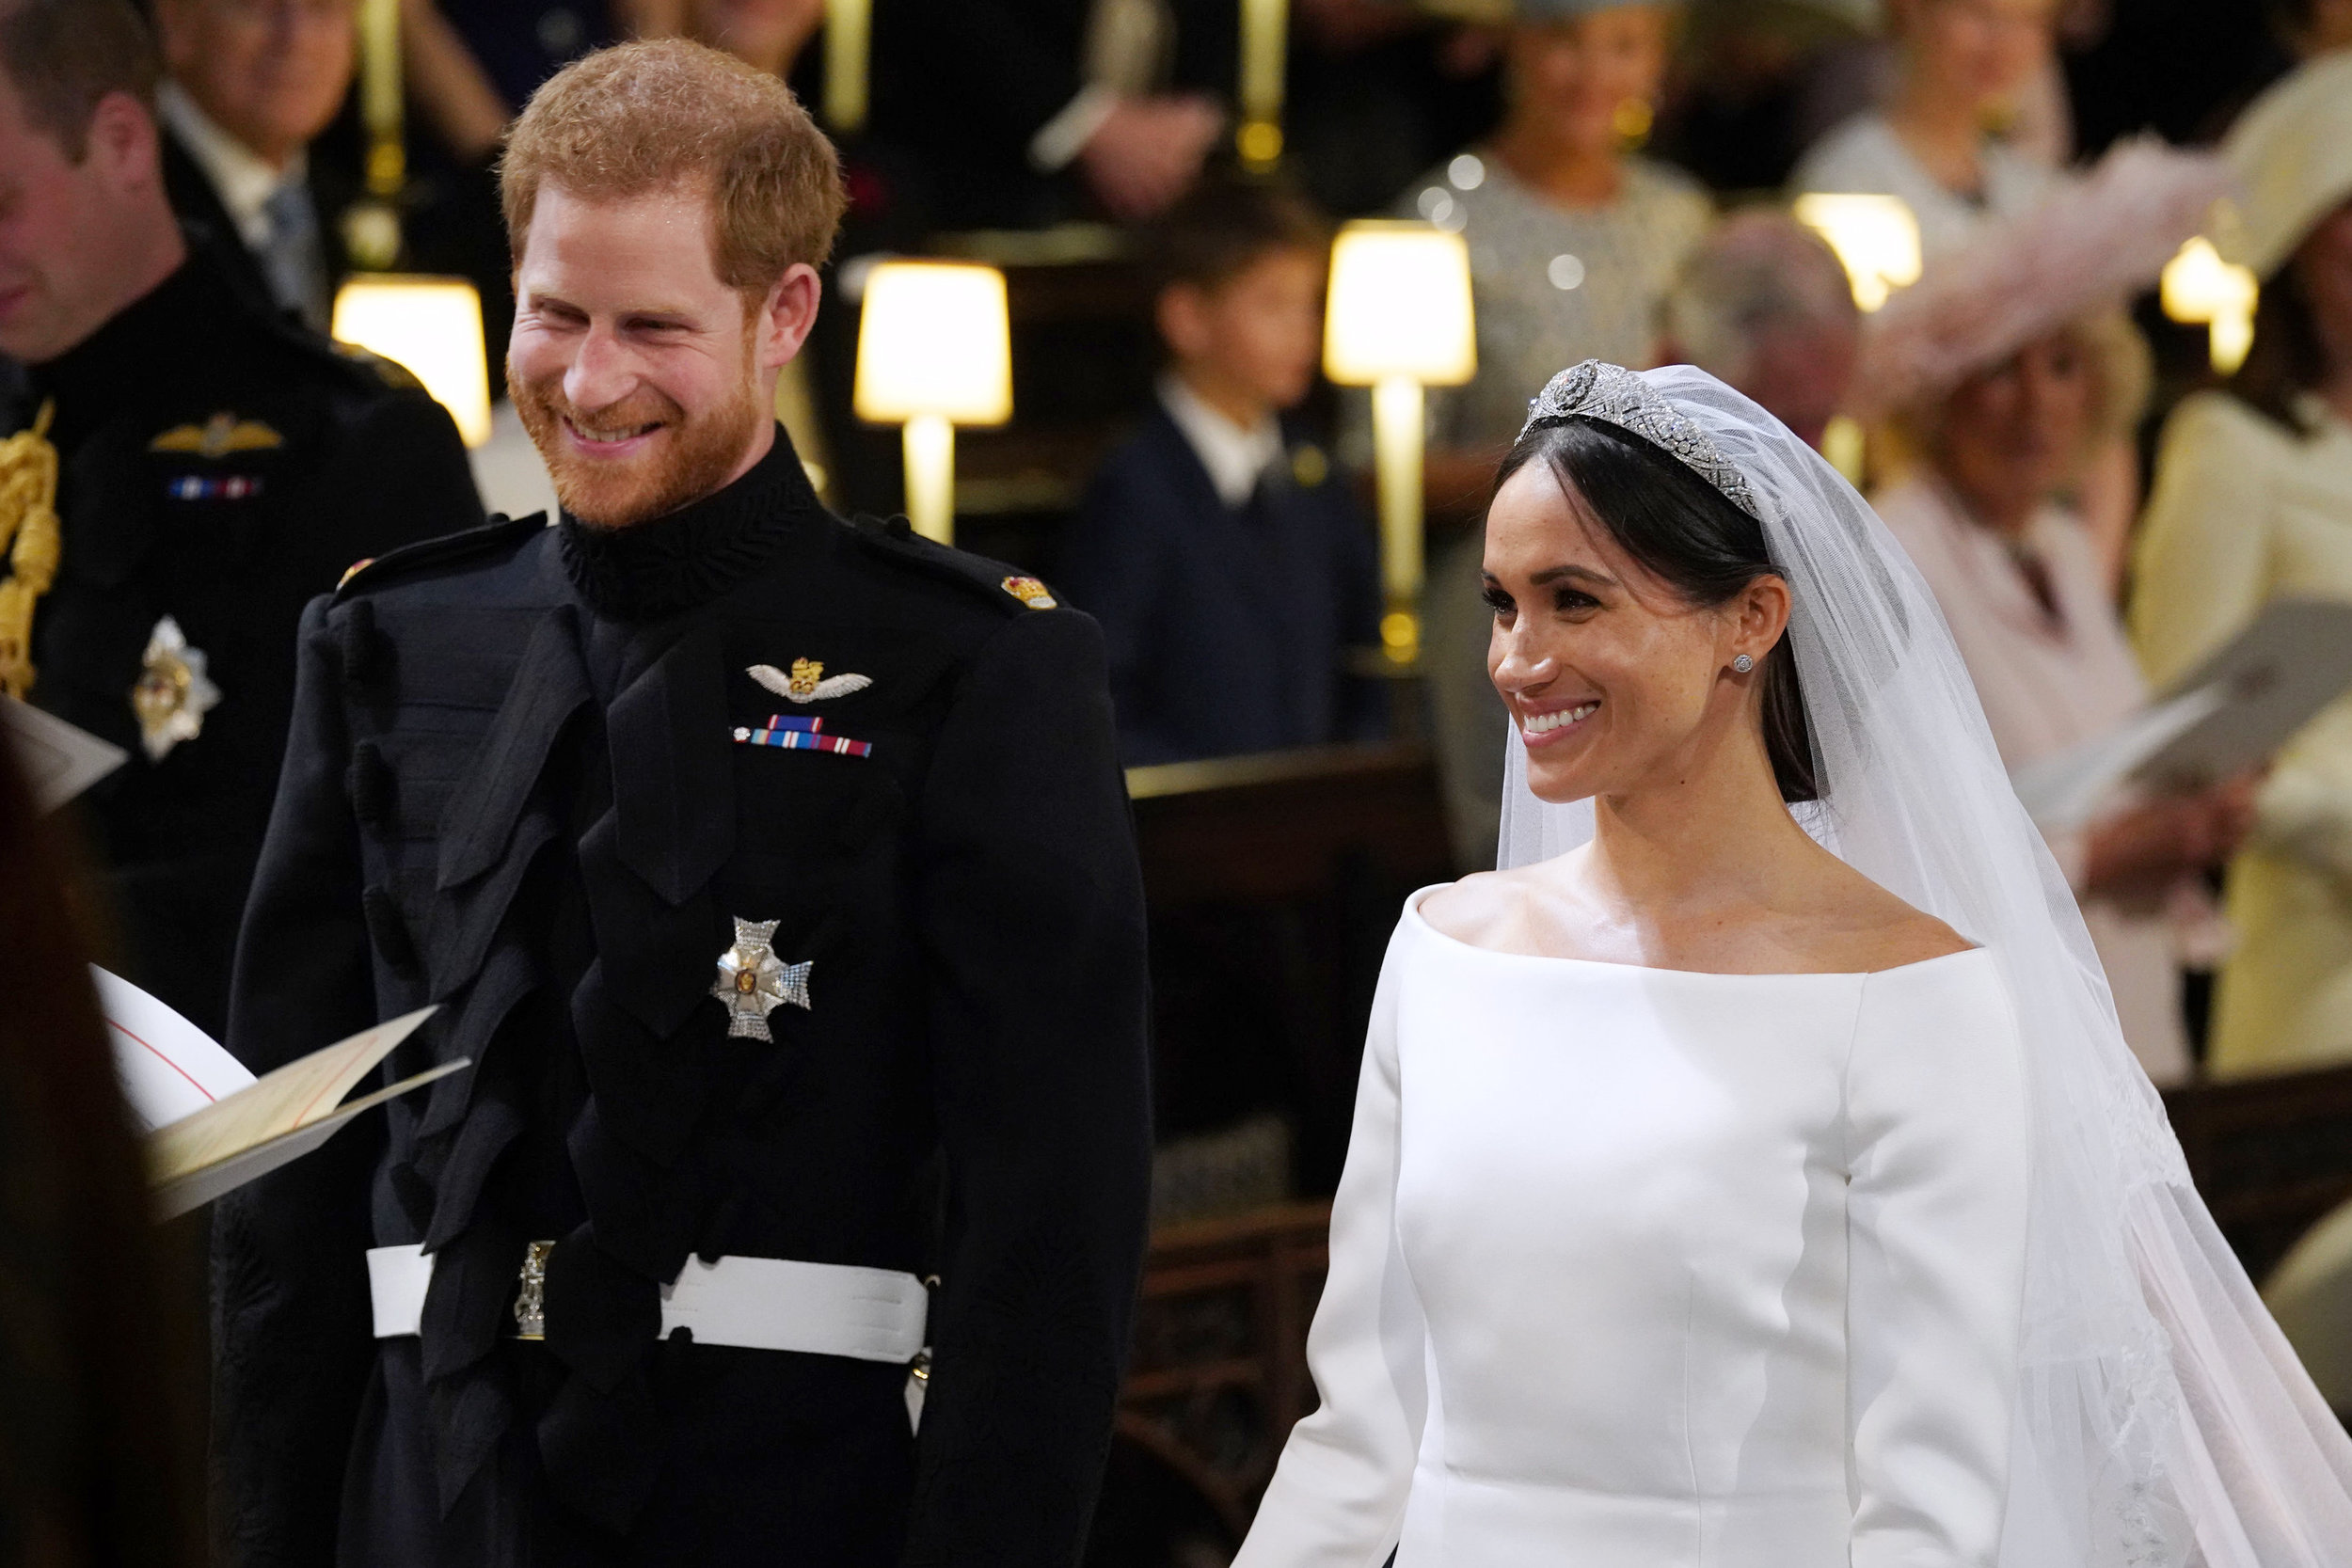 - The Royal Wedding got me feeling some things this past May. And I wrote about it.